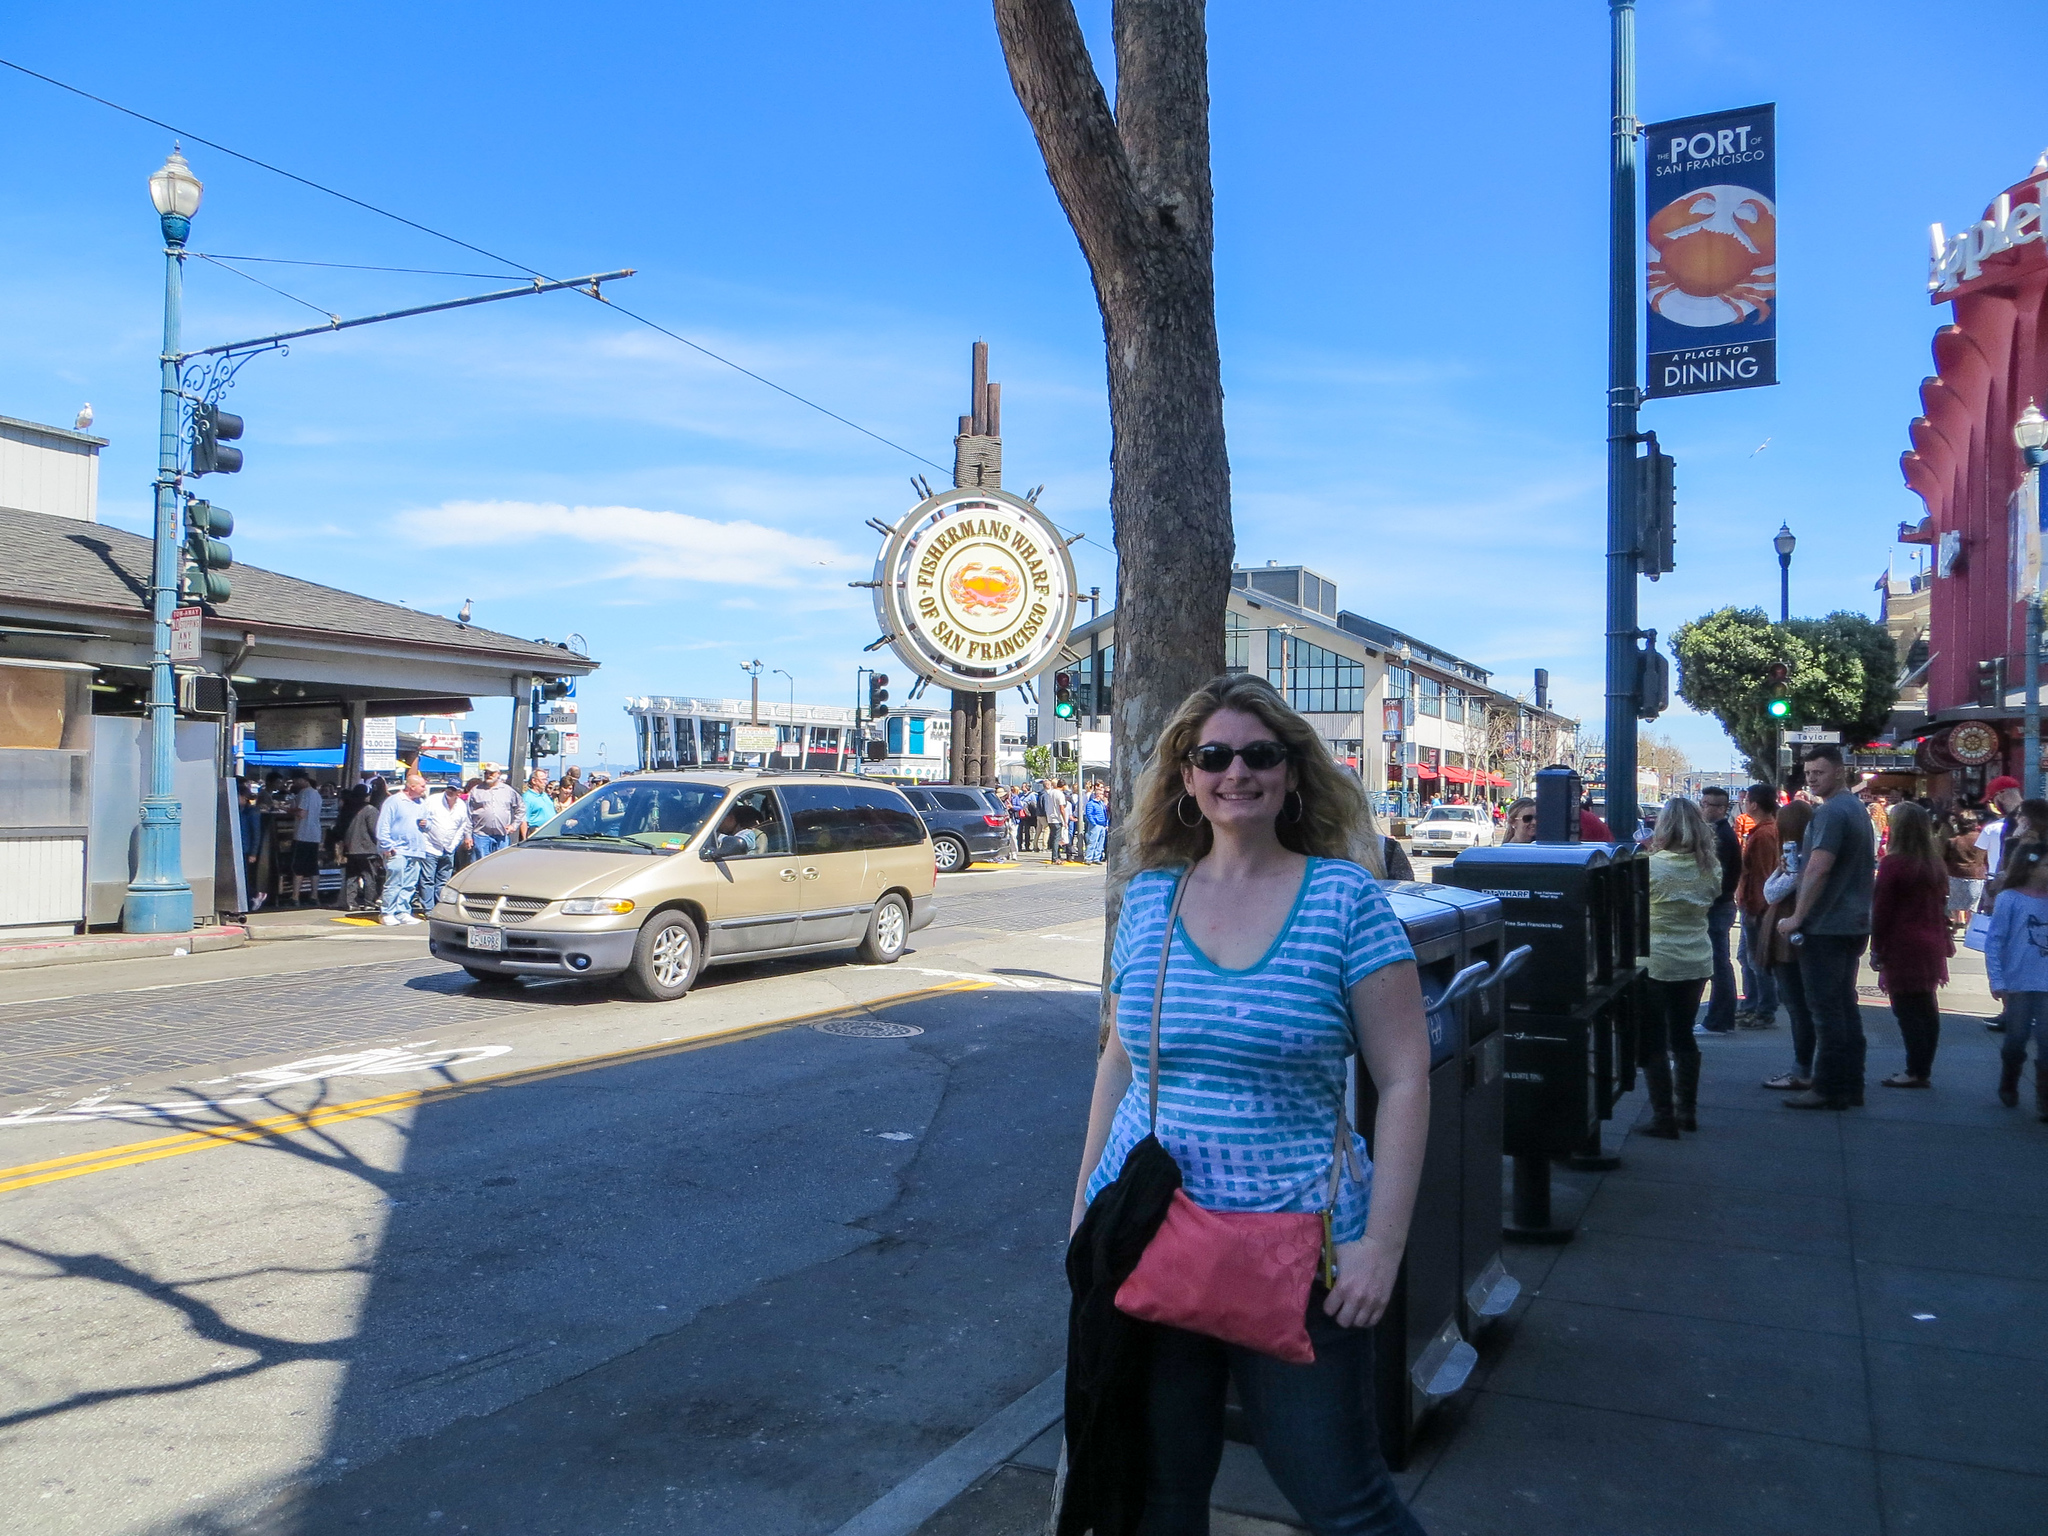 san francisco 2 days means exploring even touristy areas like fishermans wharf